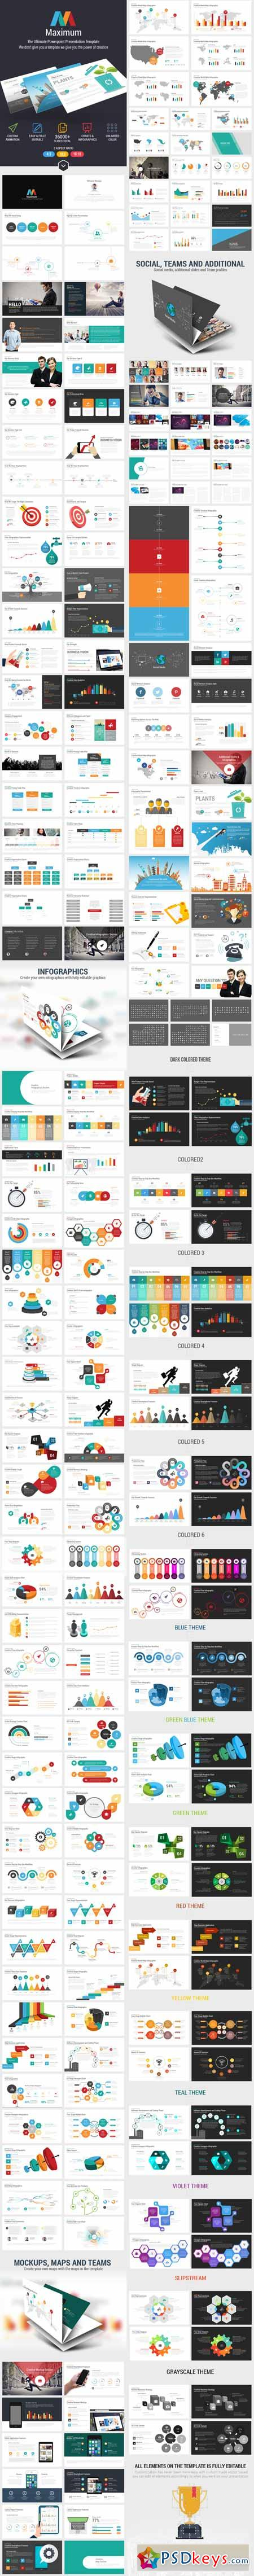 Maximum-Ultimate PowerPoint Presentation Template 11353369